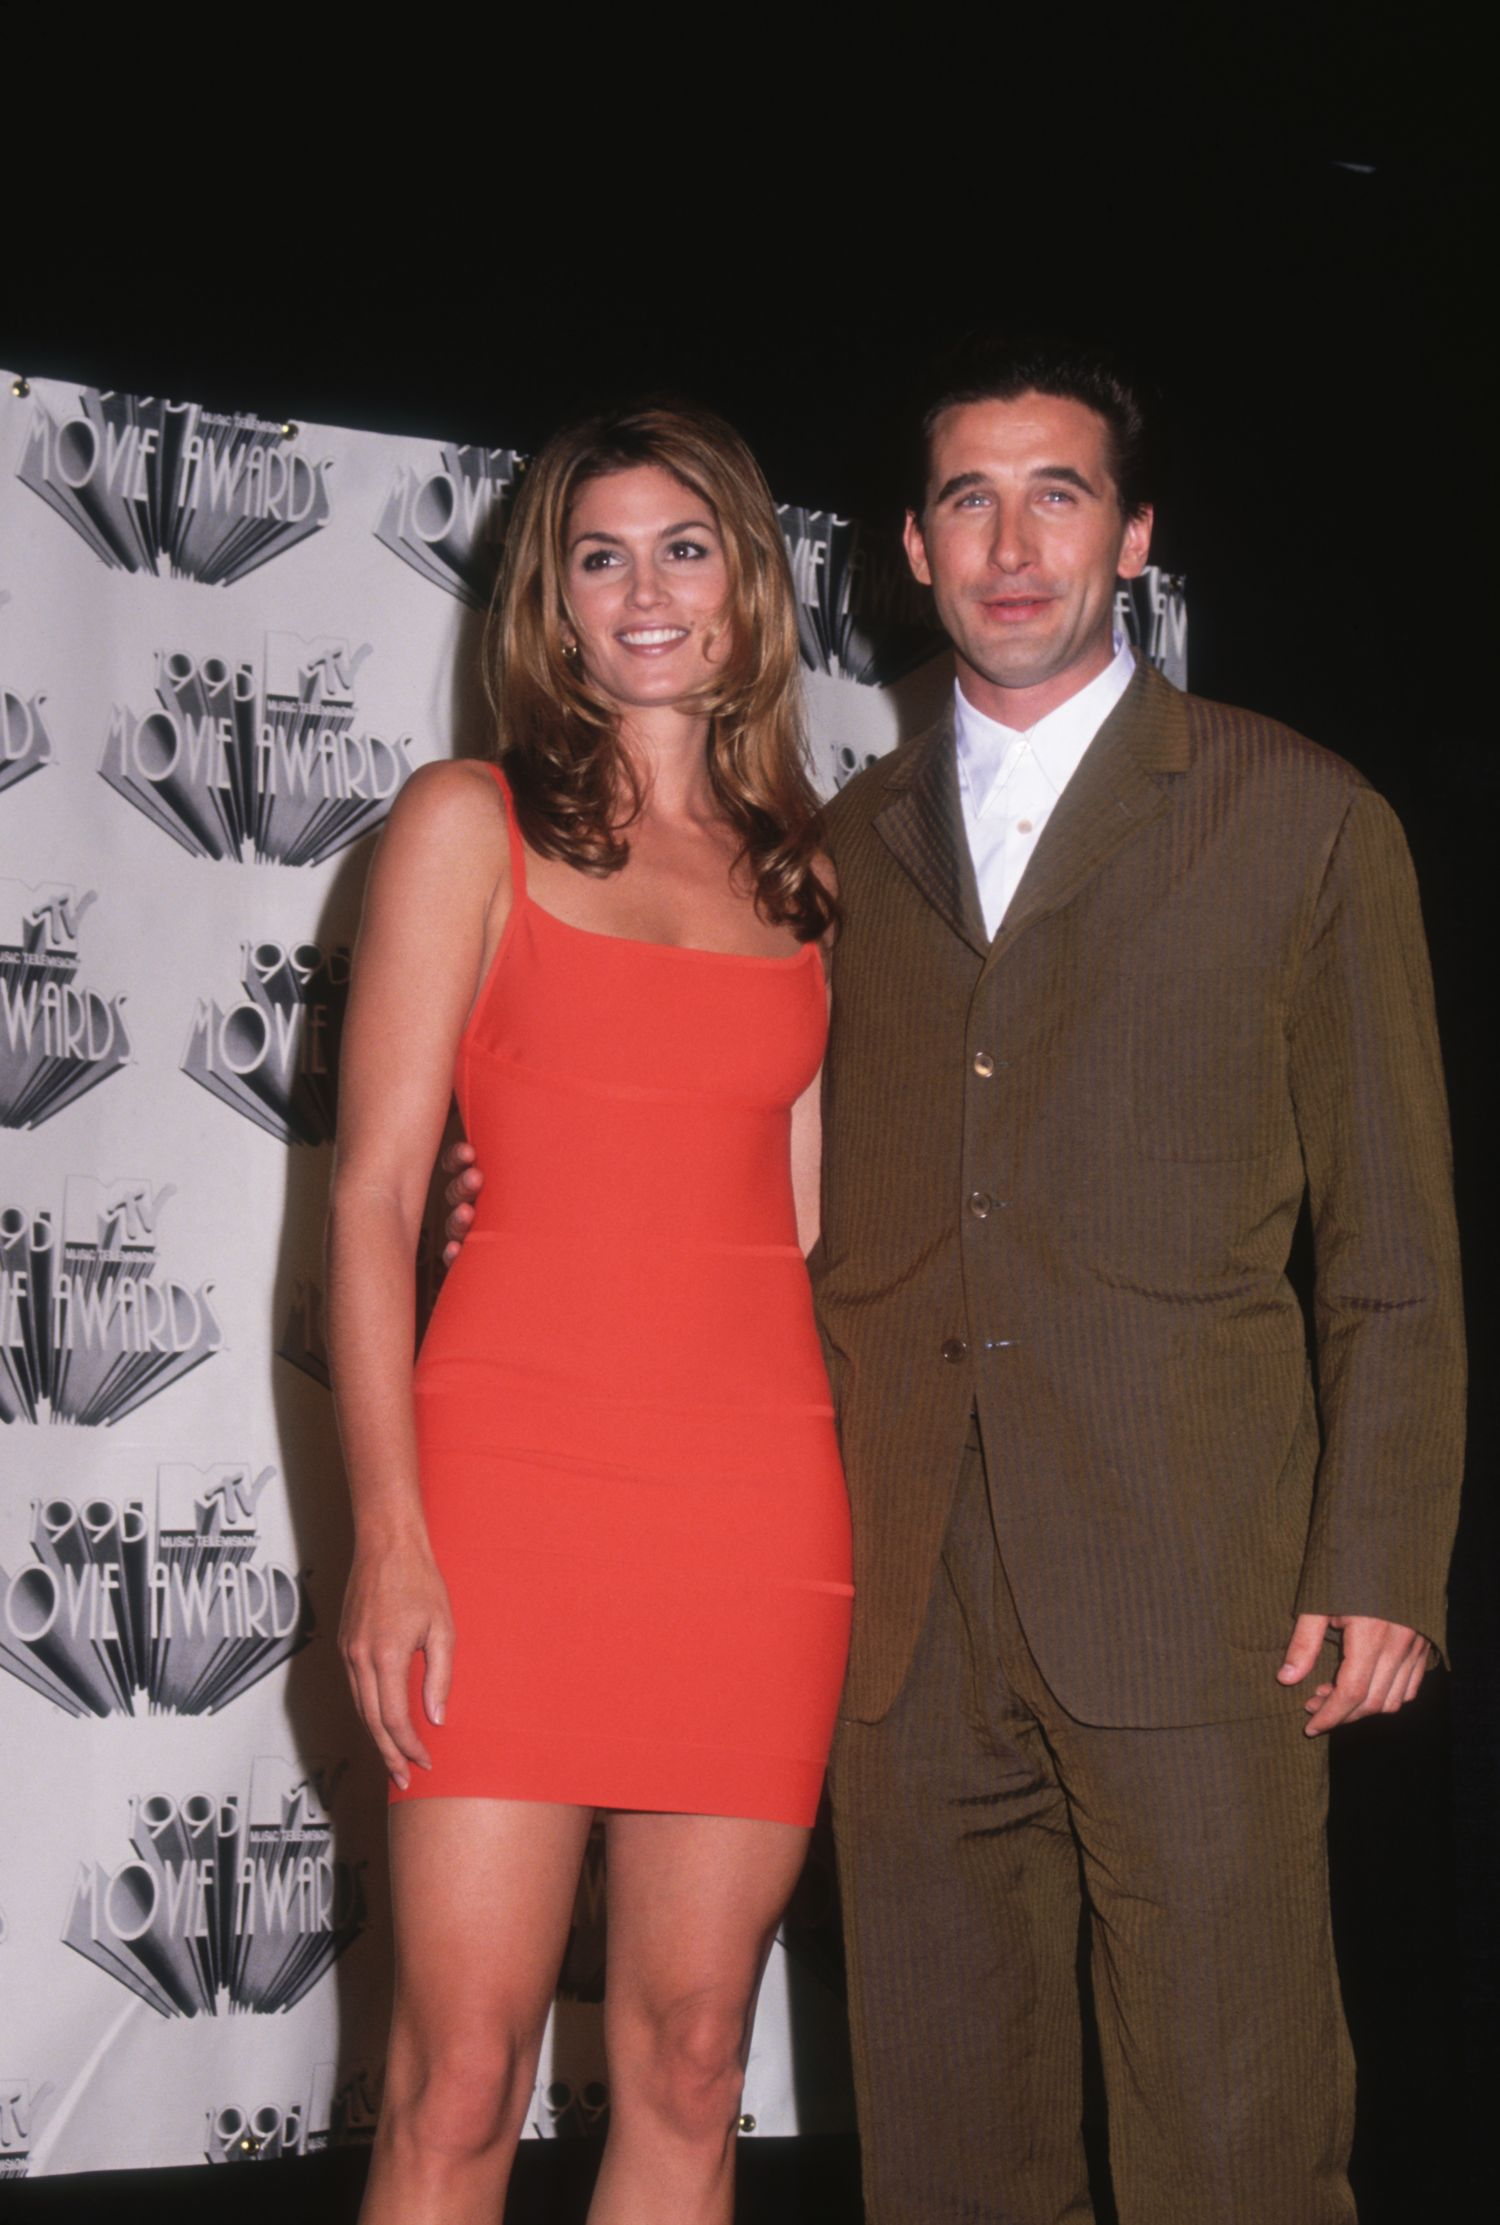 American supermodel Cindy Crawford poses with actor William Baldwin at the 1996 MTV Movie Awards. The two starred together in the 1995 thriller 'Fair Game'. (Photo by Darlene Hammond/Getty Images)